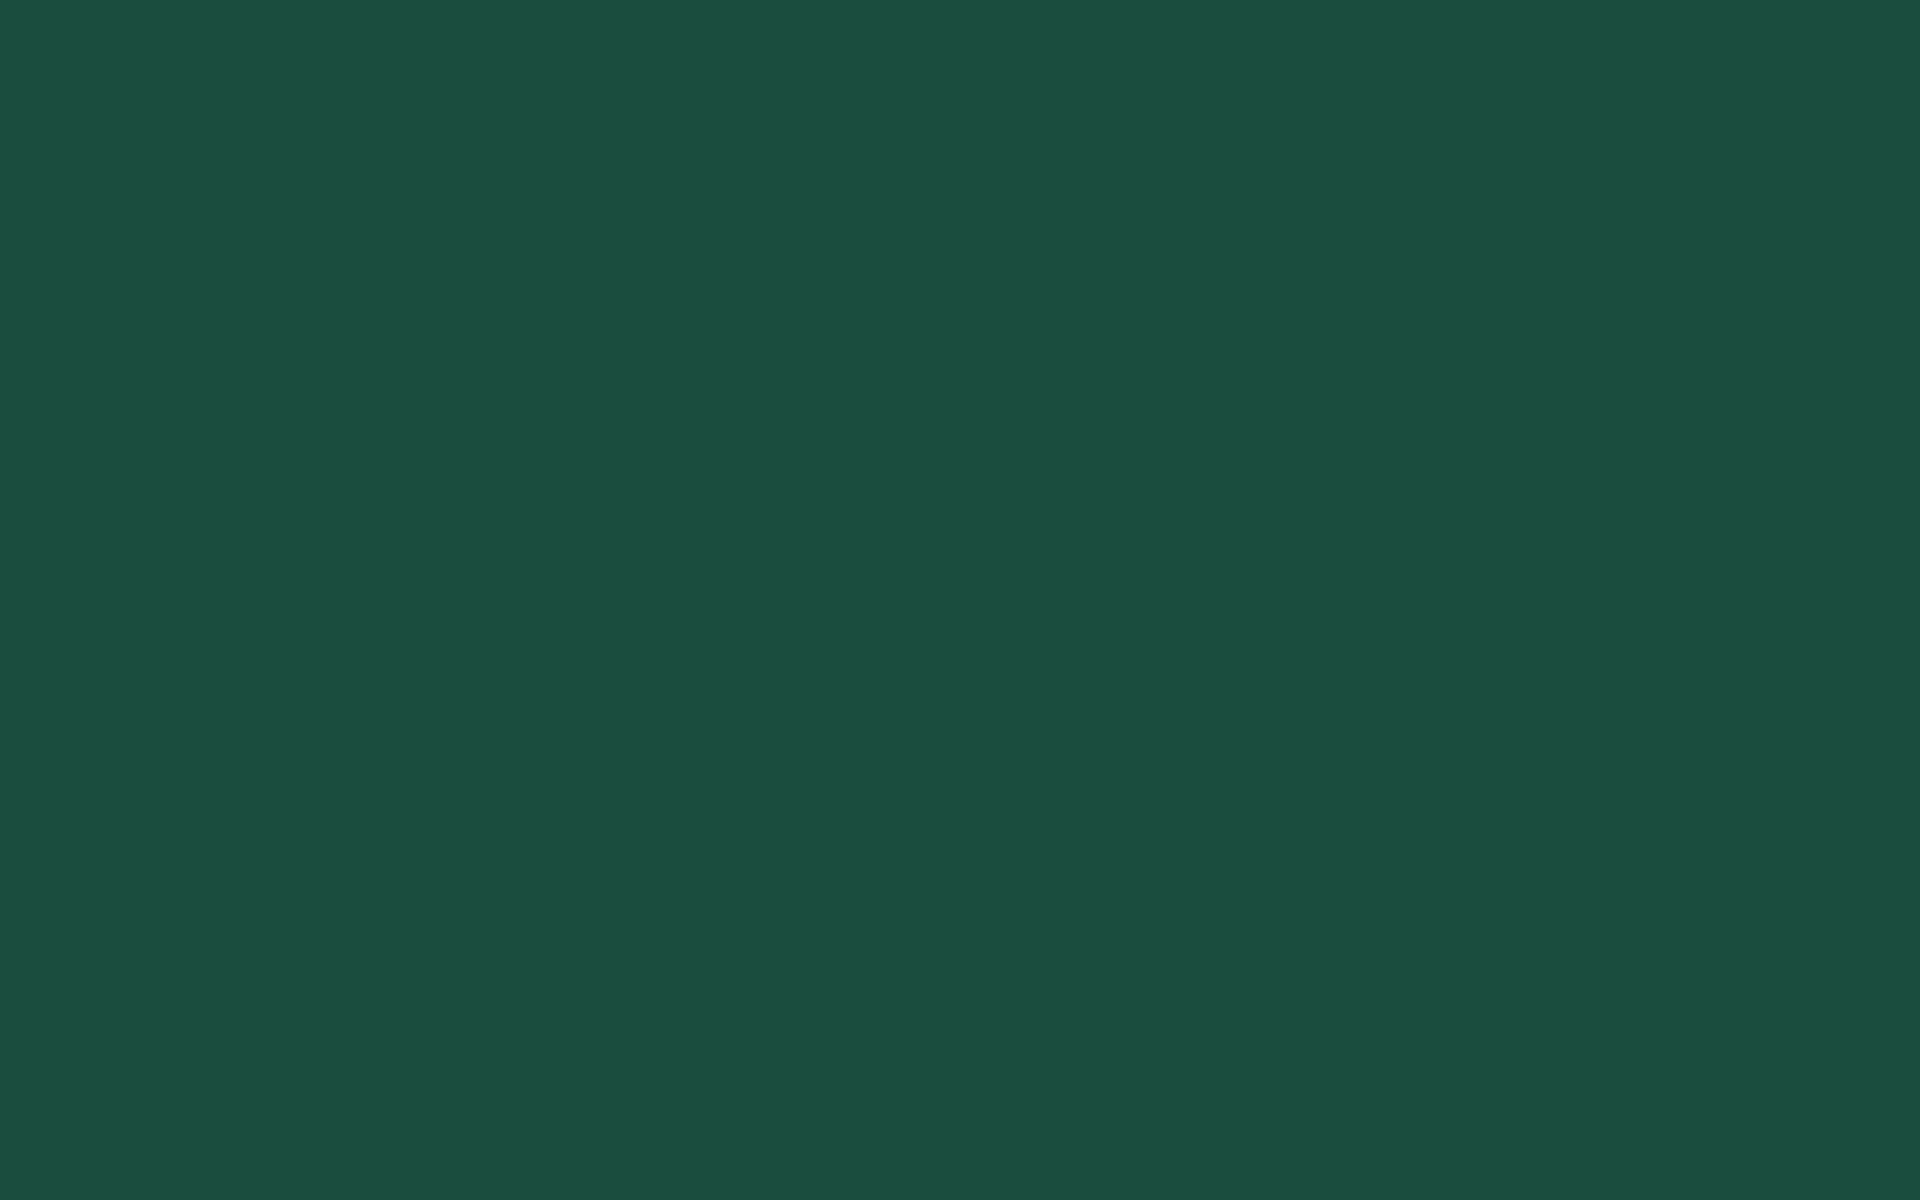 1920x1200 Brunswick Green Solid Color Background